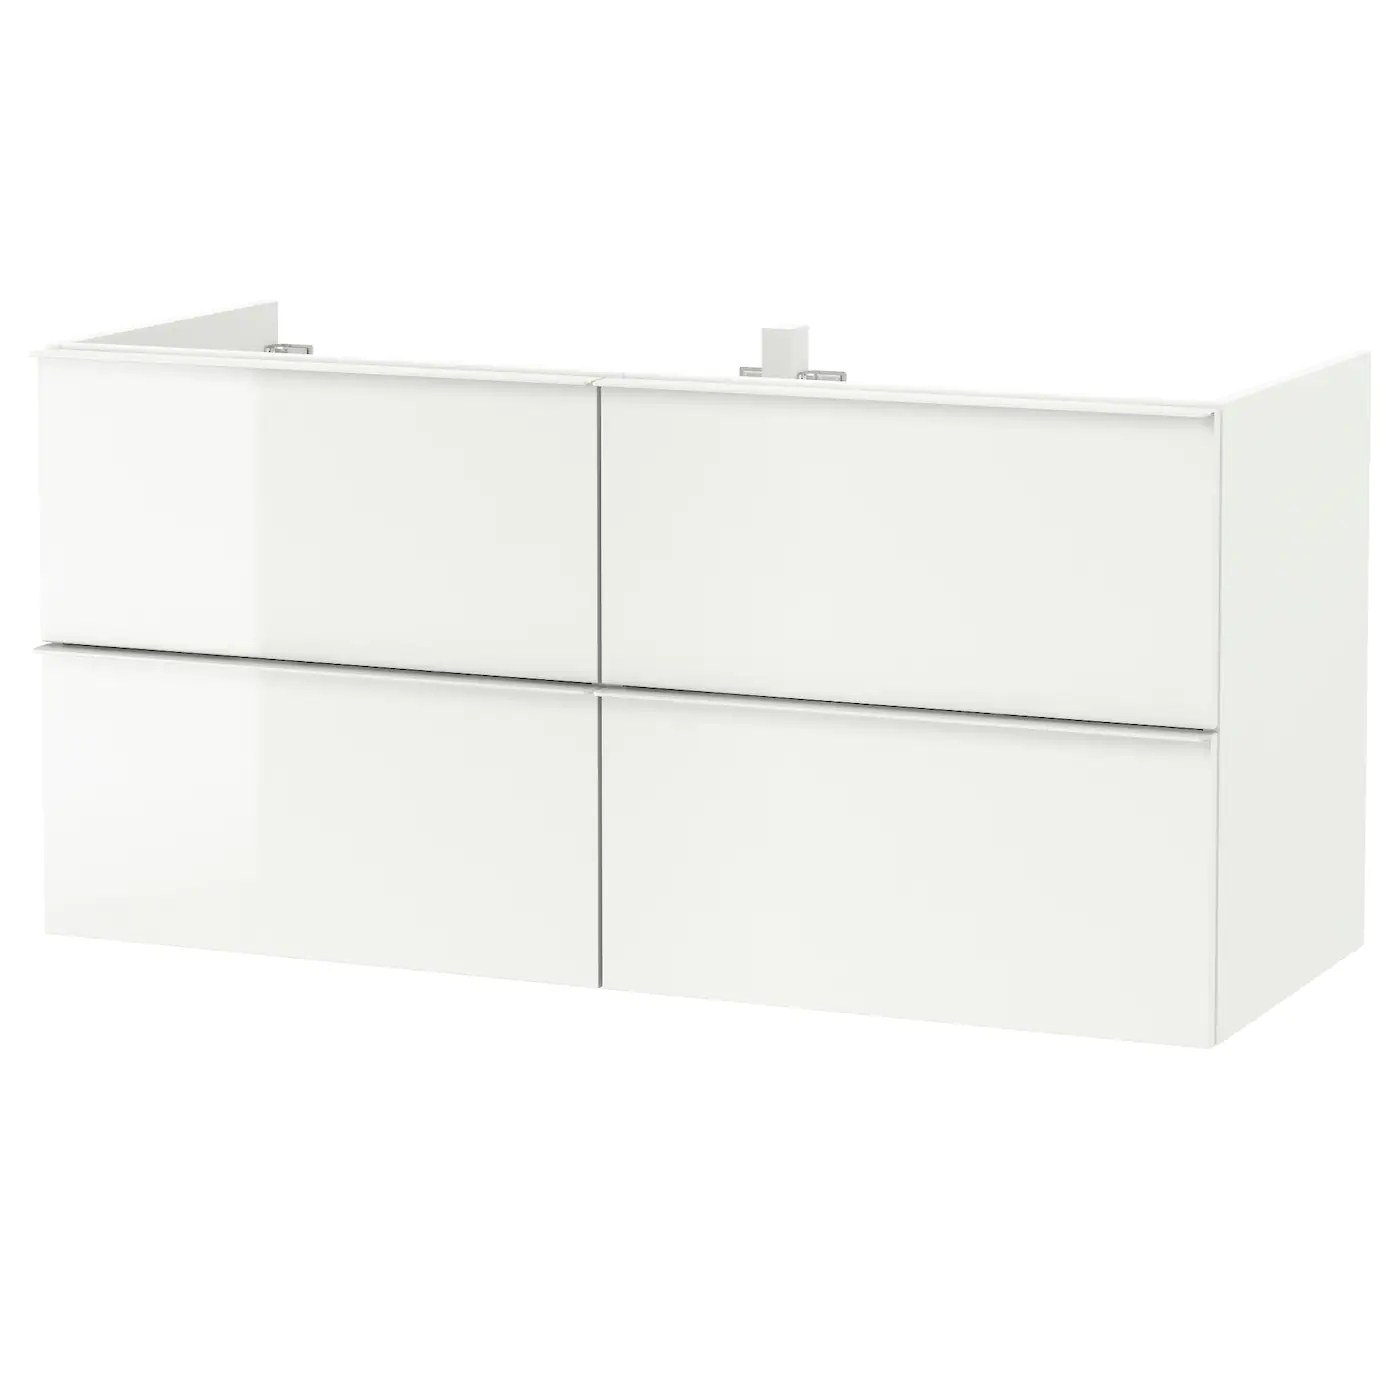 Godmorgon Wash Stand With 4 Drawers High Gloss White 120x47x58 Cm Ikea